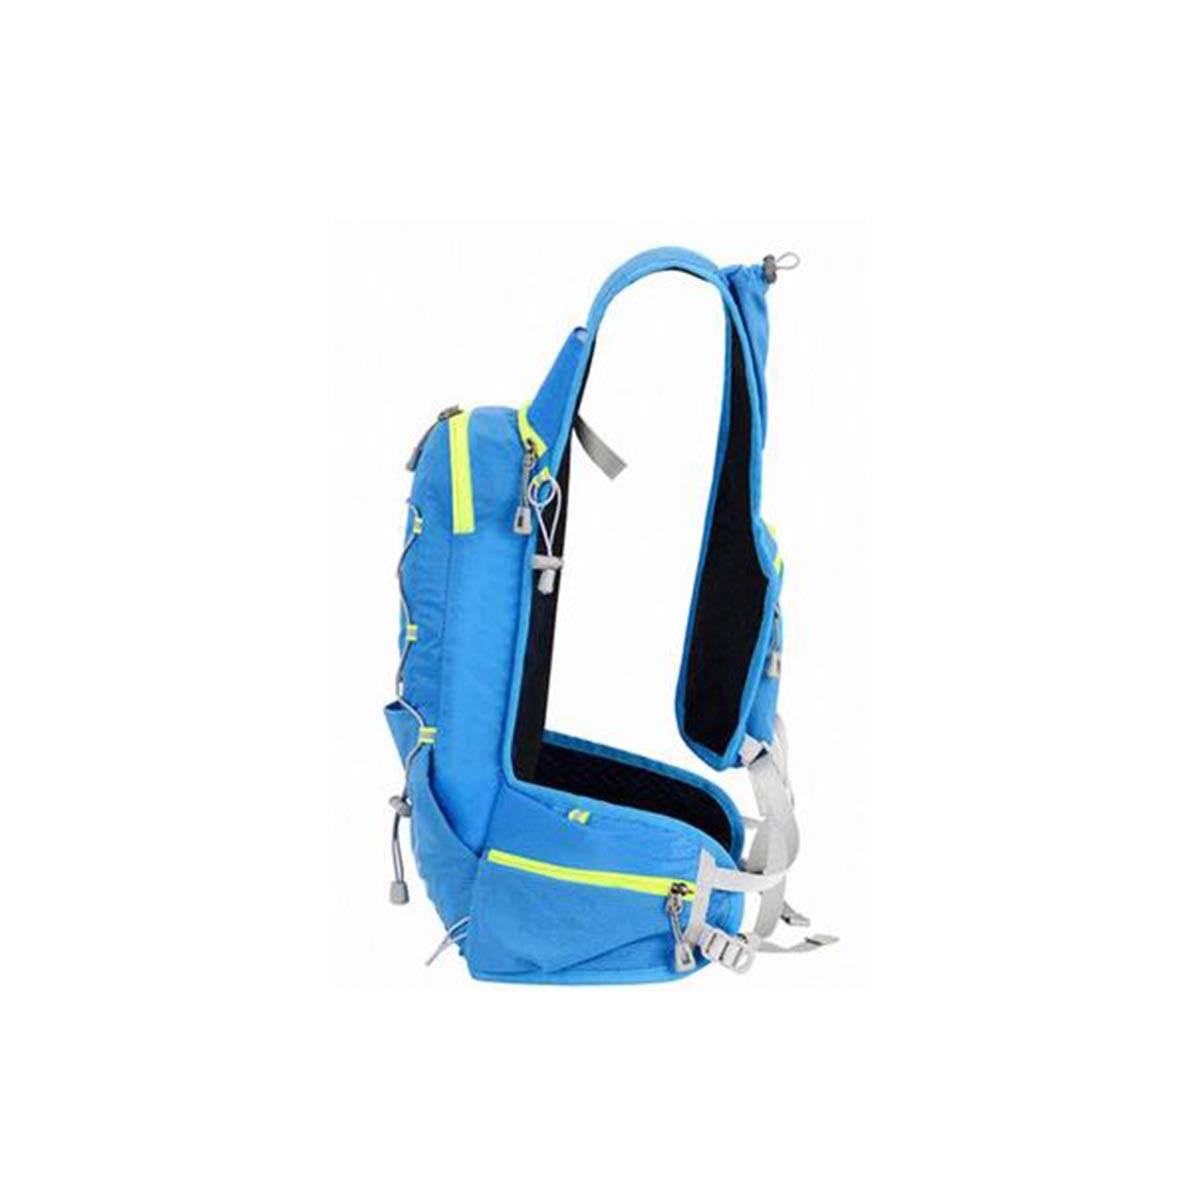 Lightweight Small Capacity Hiking Backpack Qingduqijian Vest Backpack Running Backpack Male and Female Marathon Cycling Backpack Color : Red